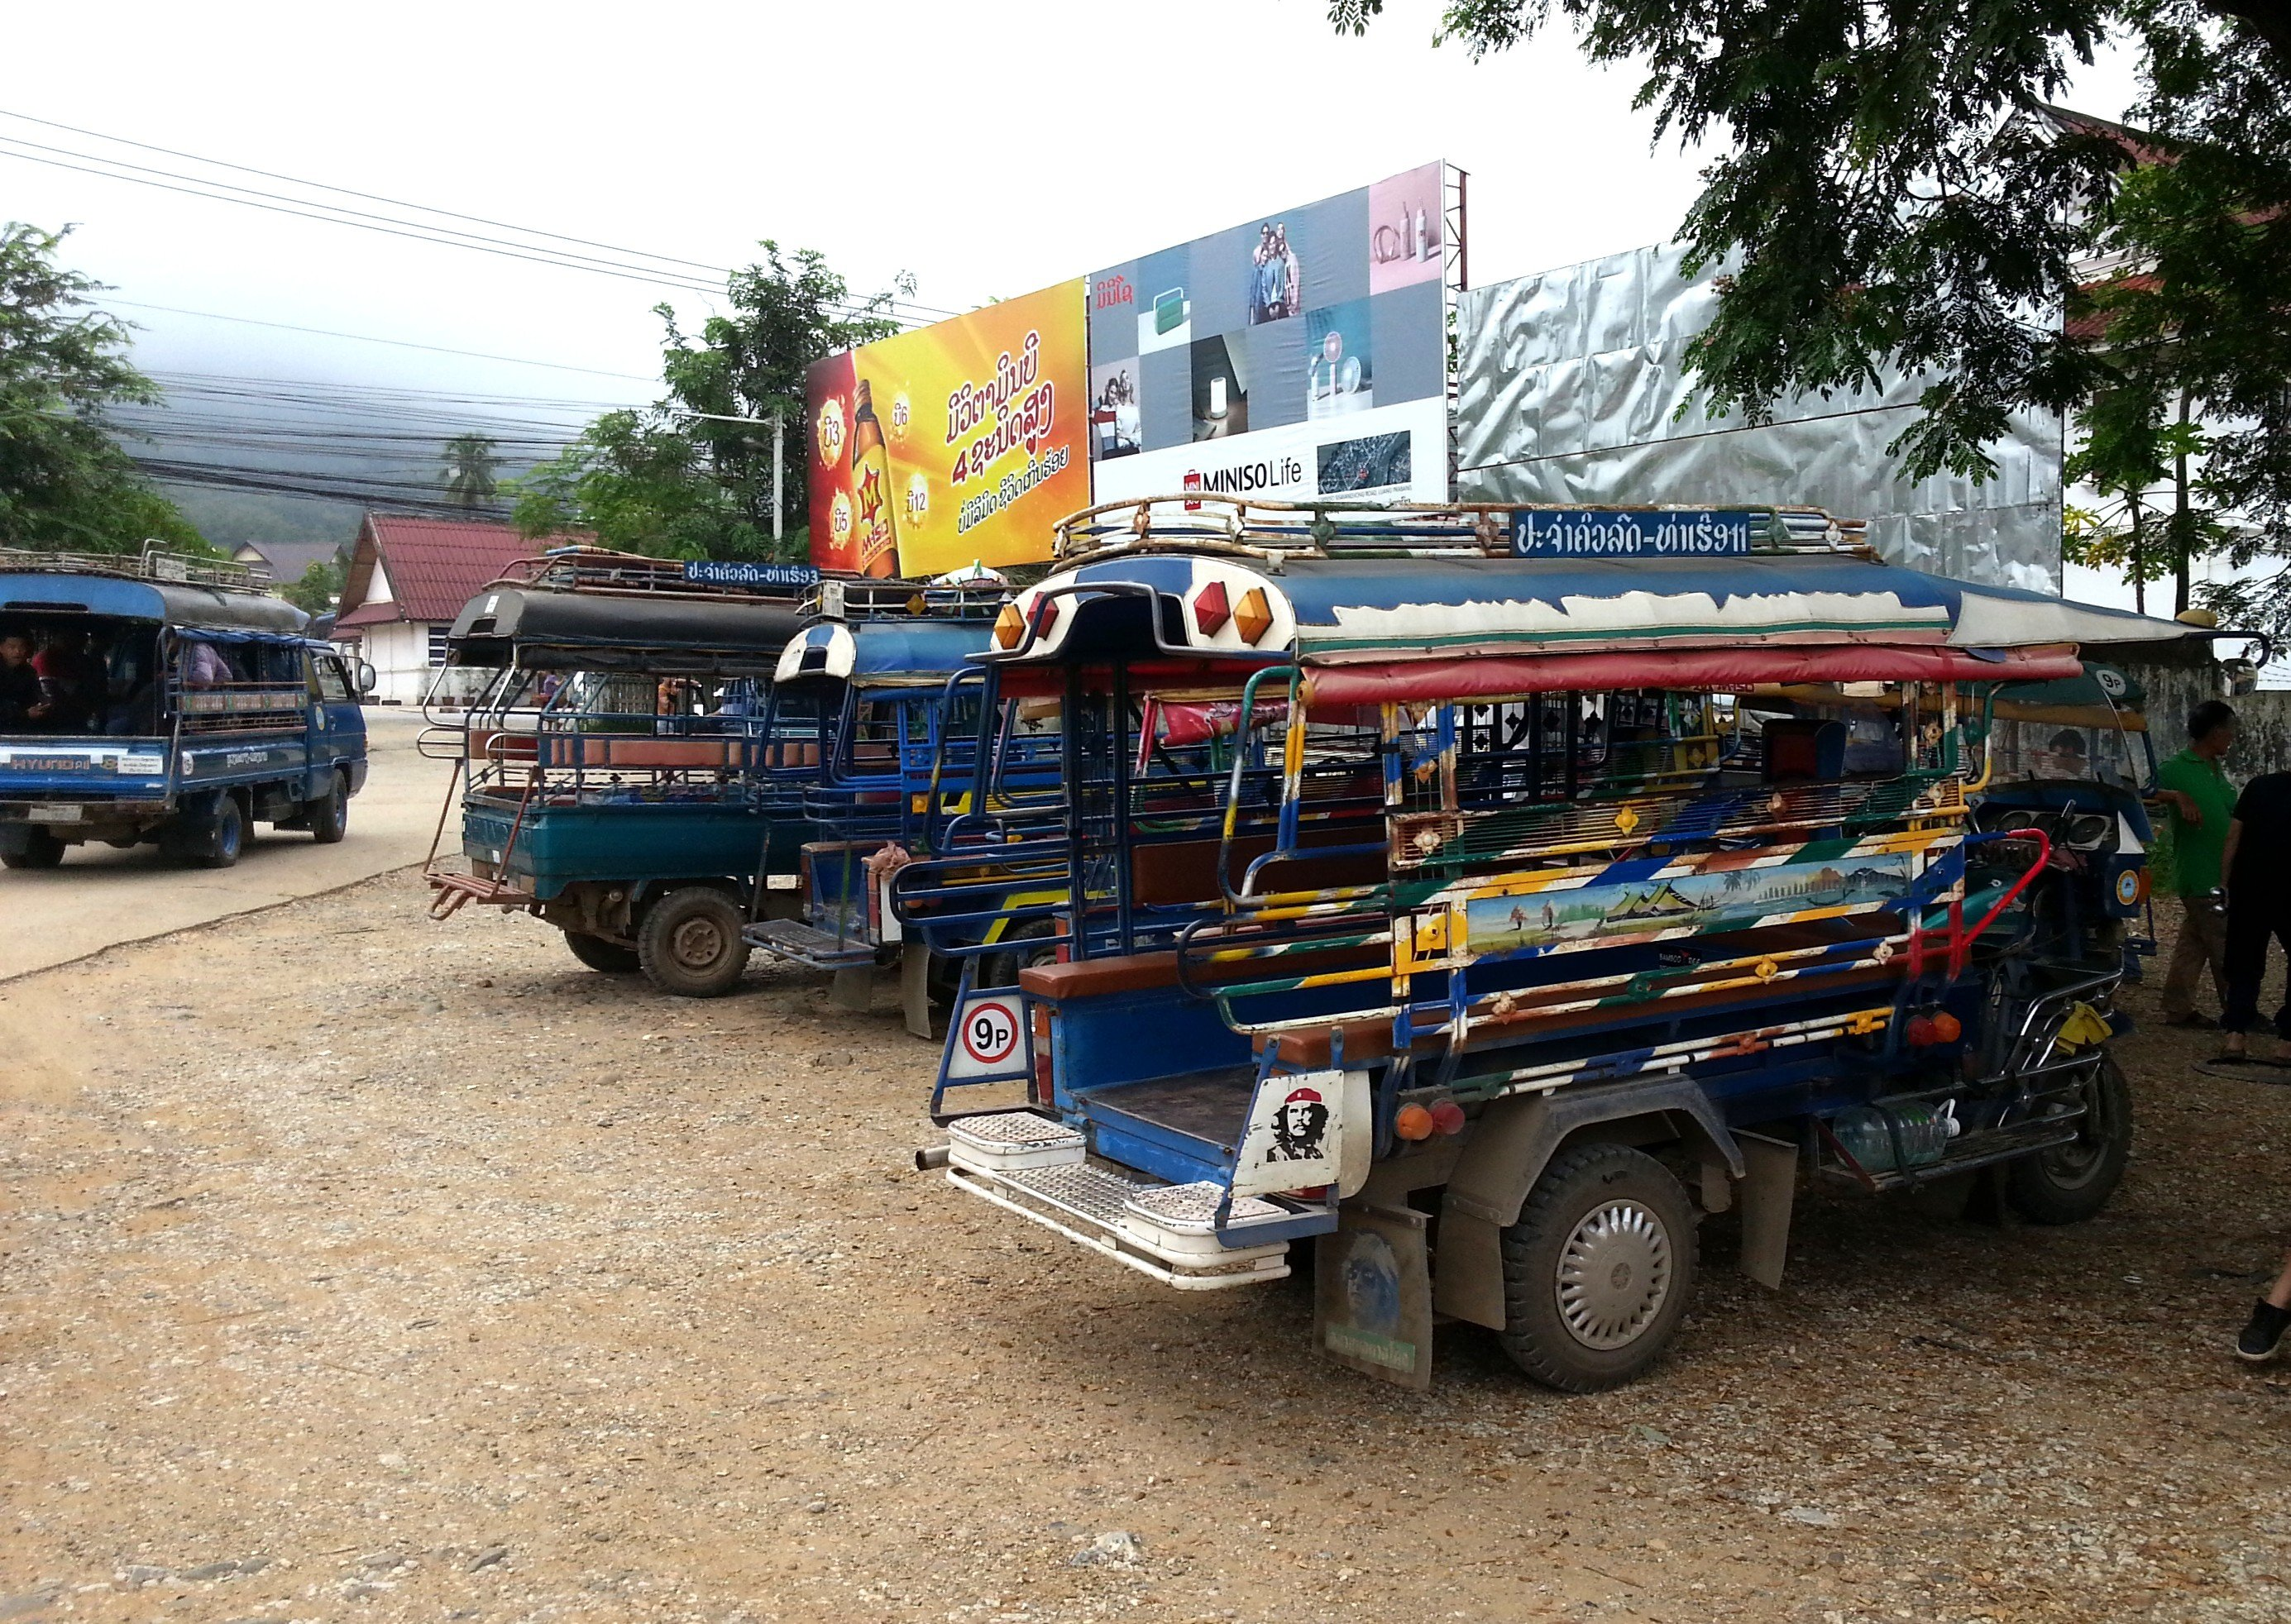 Taxi services at the Southern Bus Terminal